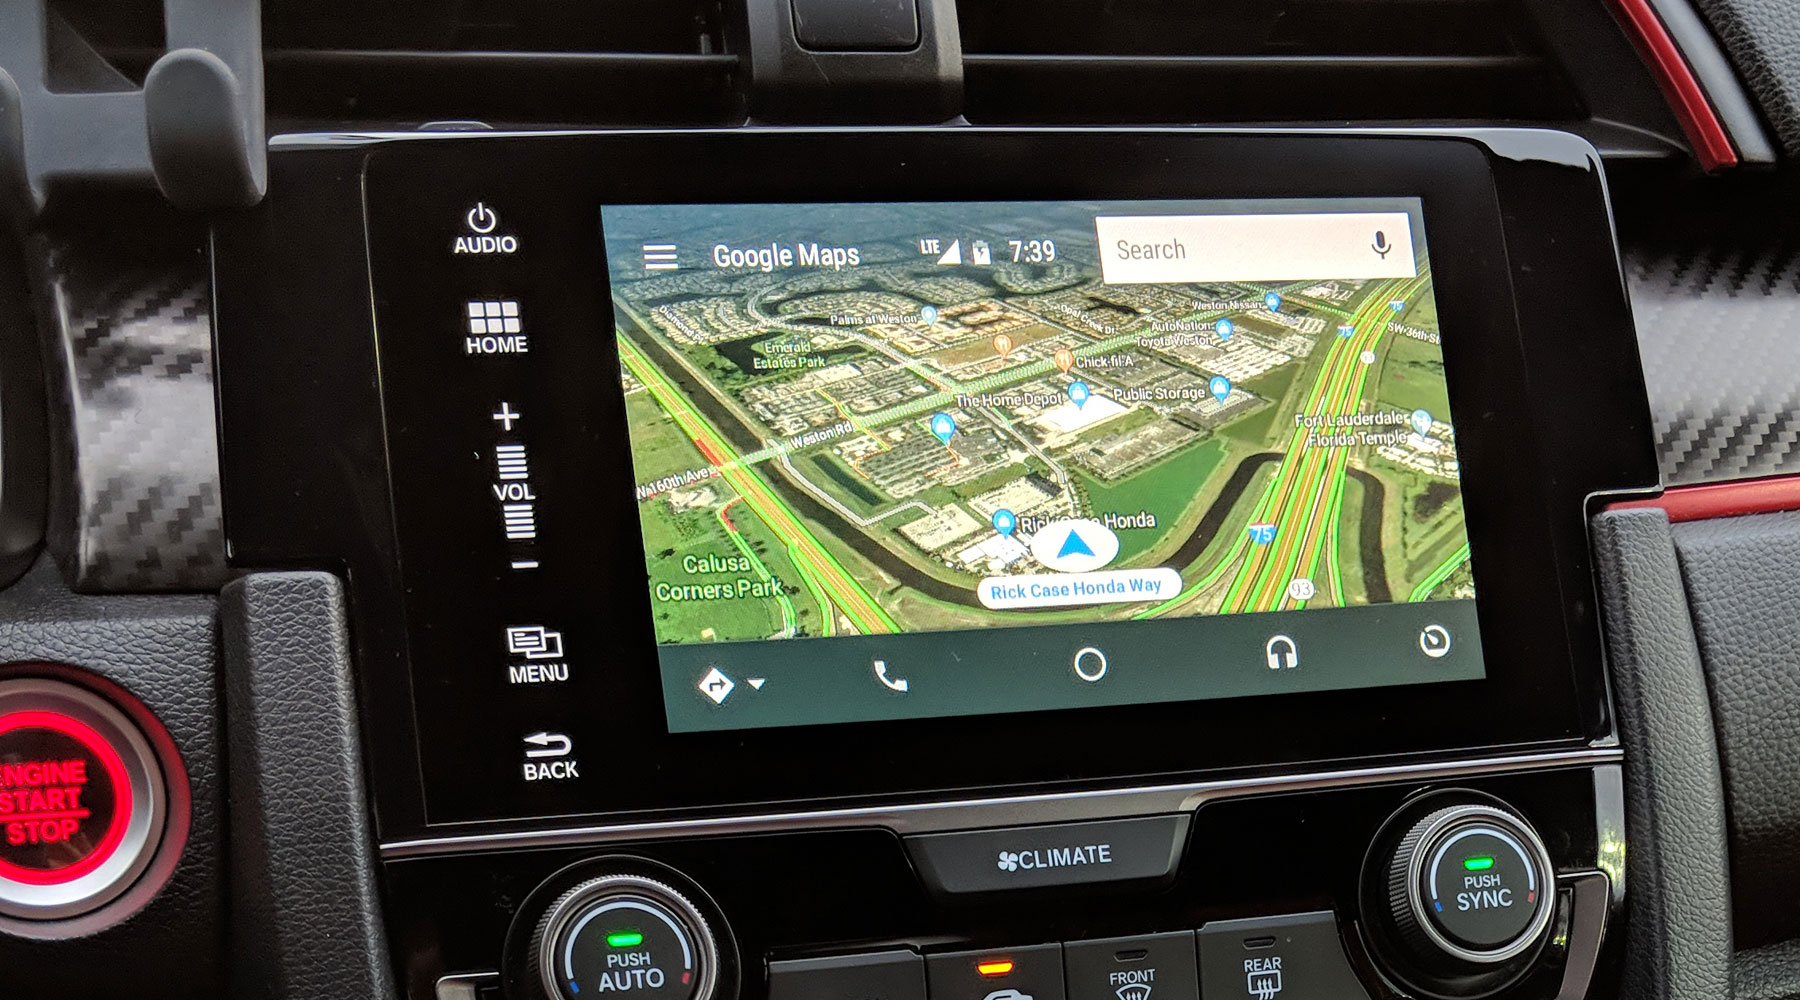 Android Auto Gets Satellite View With Google Maps Connected Car